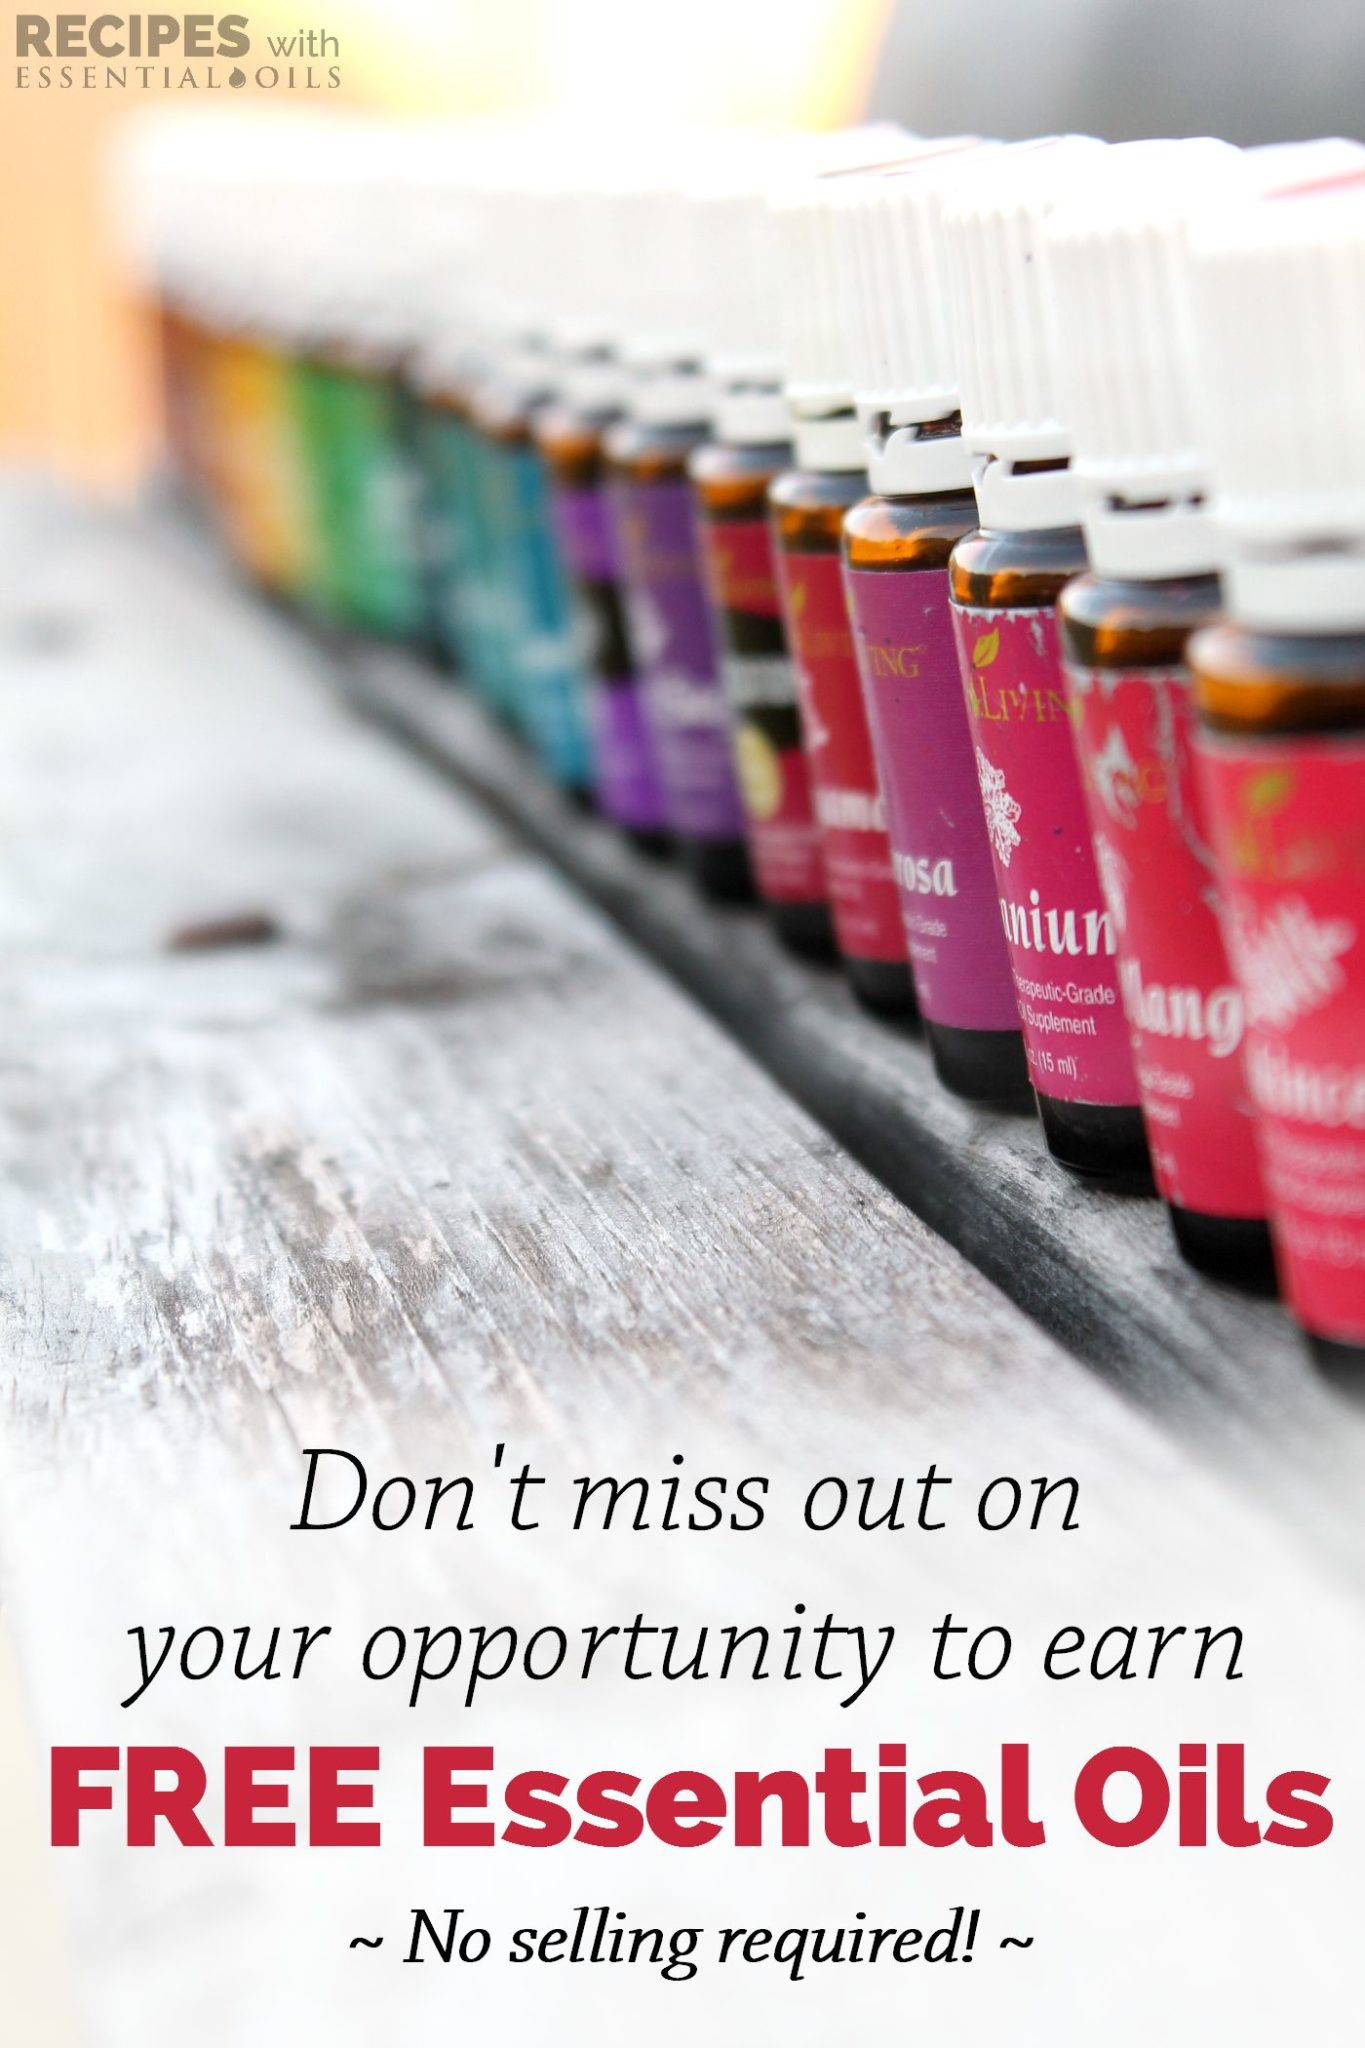 Benefits of the Essential Rewards Program = FREE Oils every month! | RecipesWithEssentialOils.com